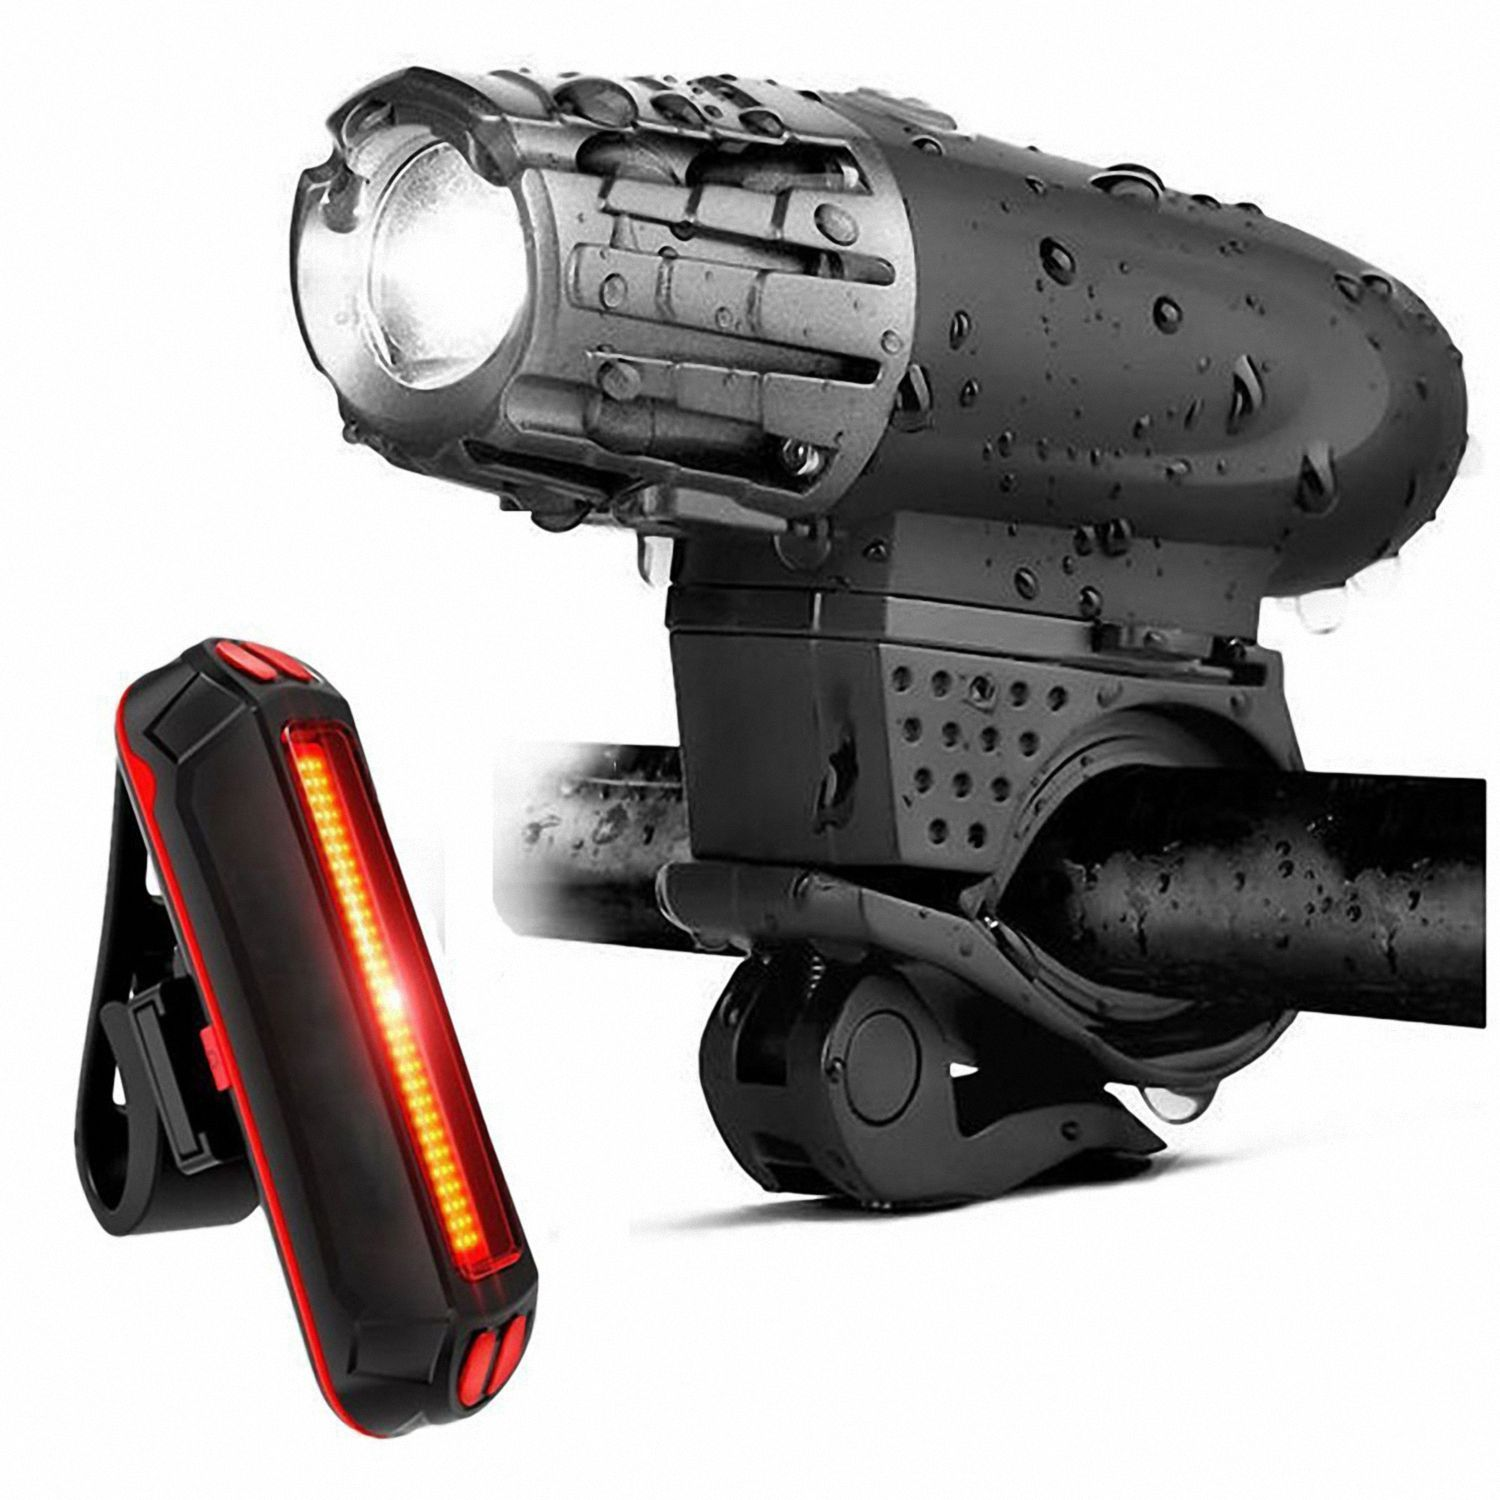 FSTE-<font><b>Bike</b></font> <font><b>Lights</b></font> Bicycle <font><b>Lights</b></font> Front and <font><b>Back</b></font> USB <font><b>Rechargeable</b></font> <font><b>Bike</b></font> <font><b>Light</b></font> Set Super Bright Front and Rear Flashlight LED Head image